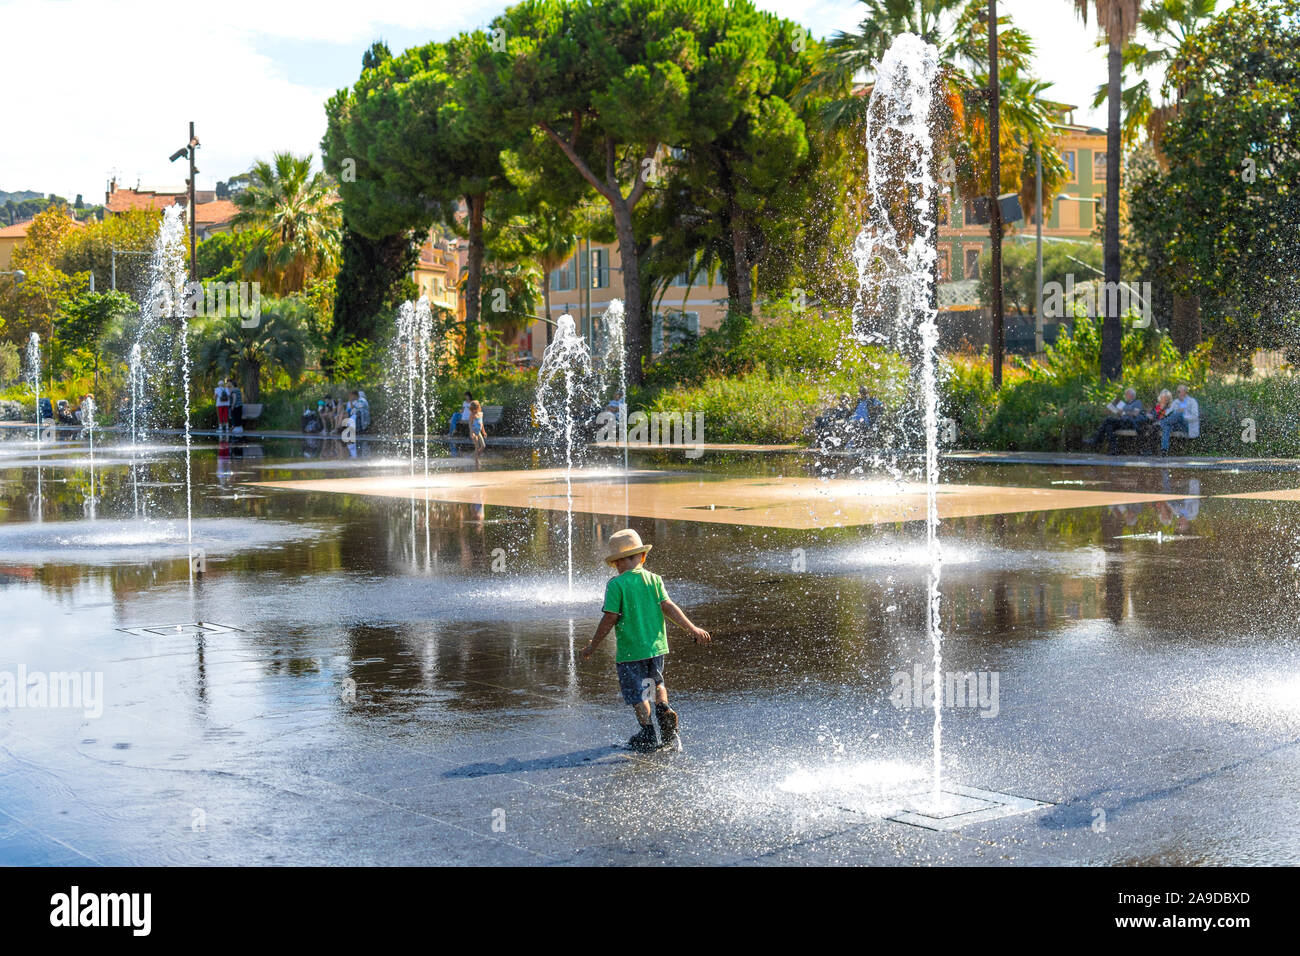 A young boy with a hat plays and splashes in the Promenade du Paillon Park in the touristic old town area of Nice, France on the French Riviera. Stock Photo